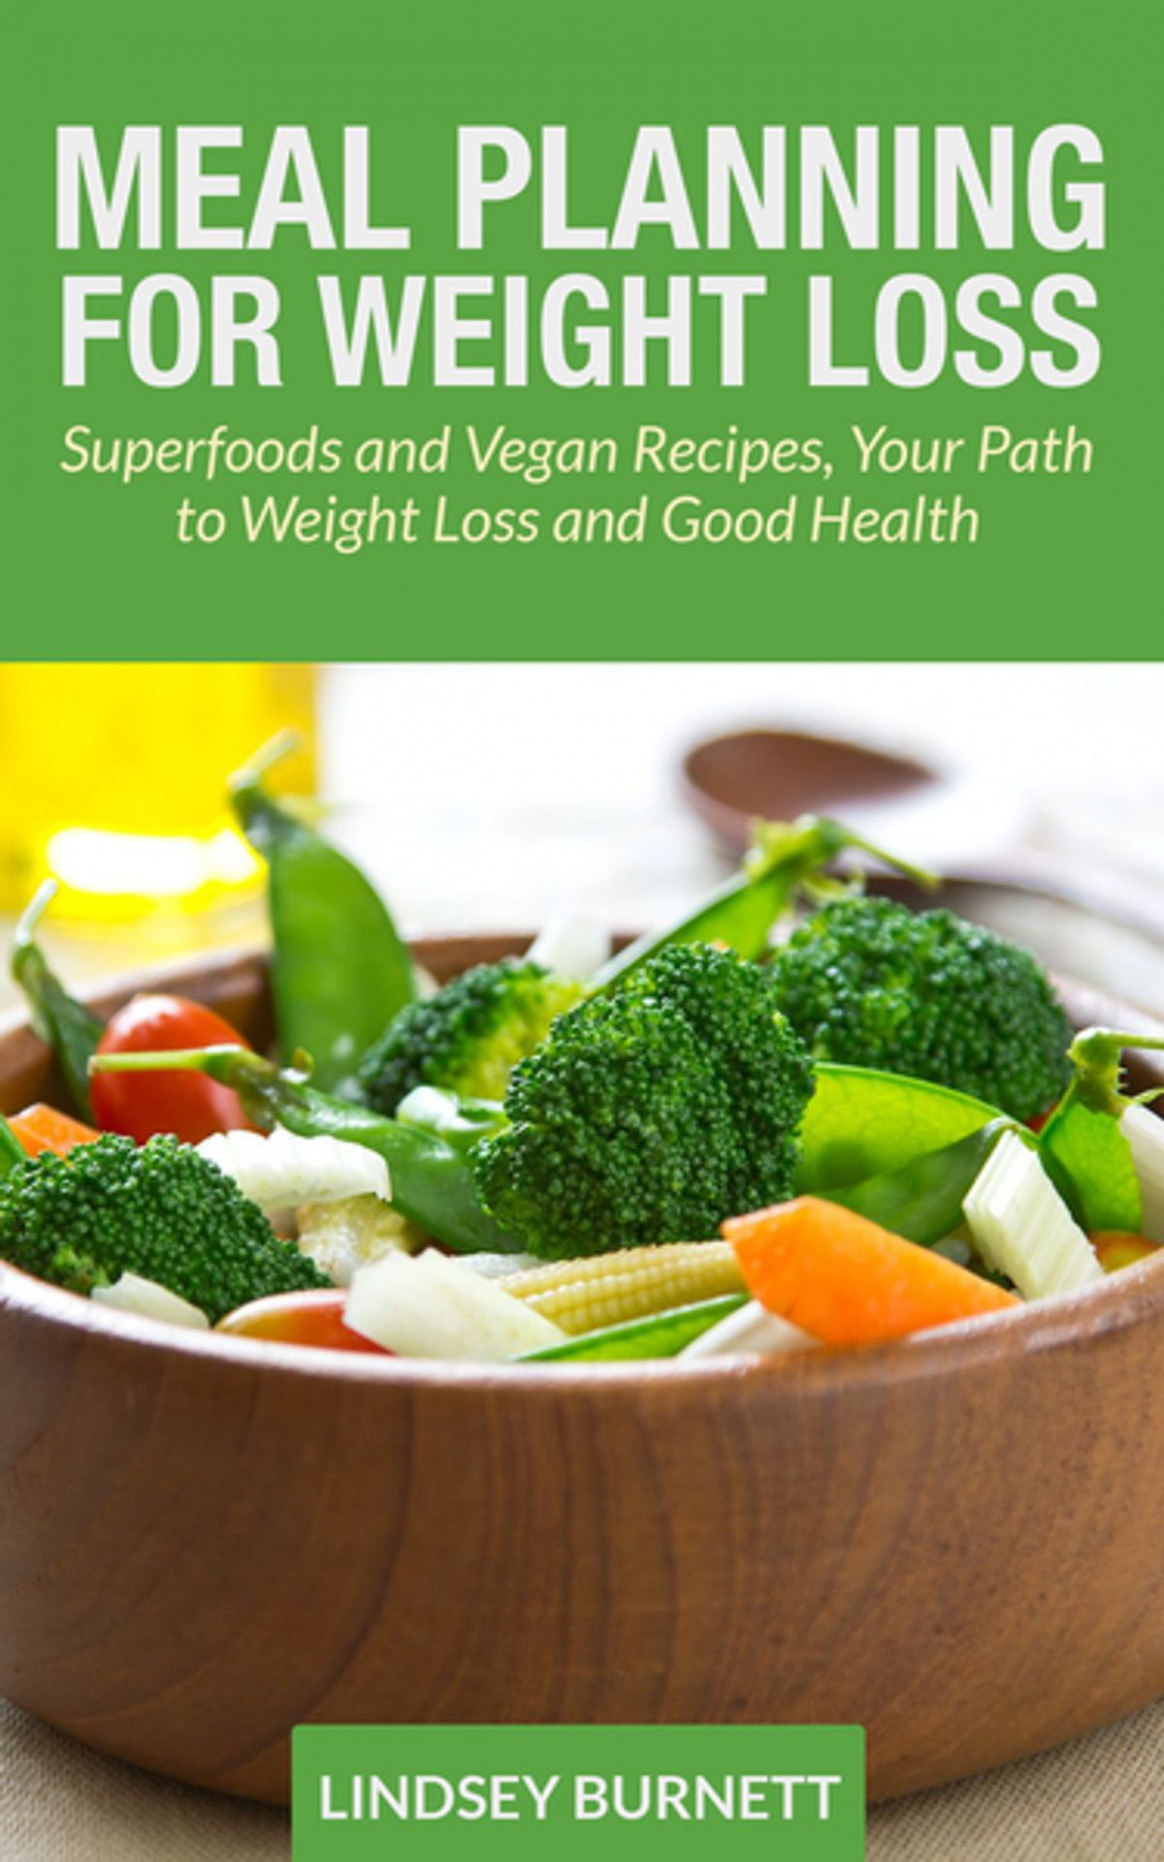 Meal Planning for Weight Loss: Superfoods and Vegan Recipes, Your Path to  Weight Loss and Good Health ebook by Lindsey Burnett - Rakuten Kobo - recipes vegetarian weight loss